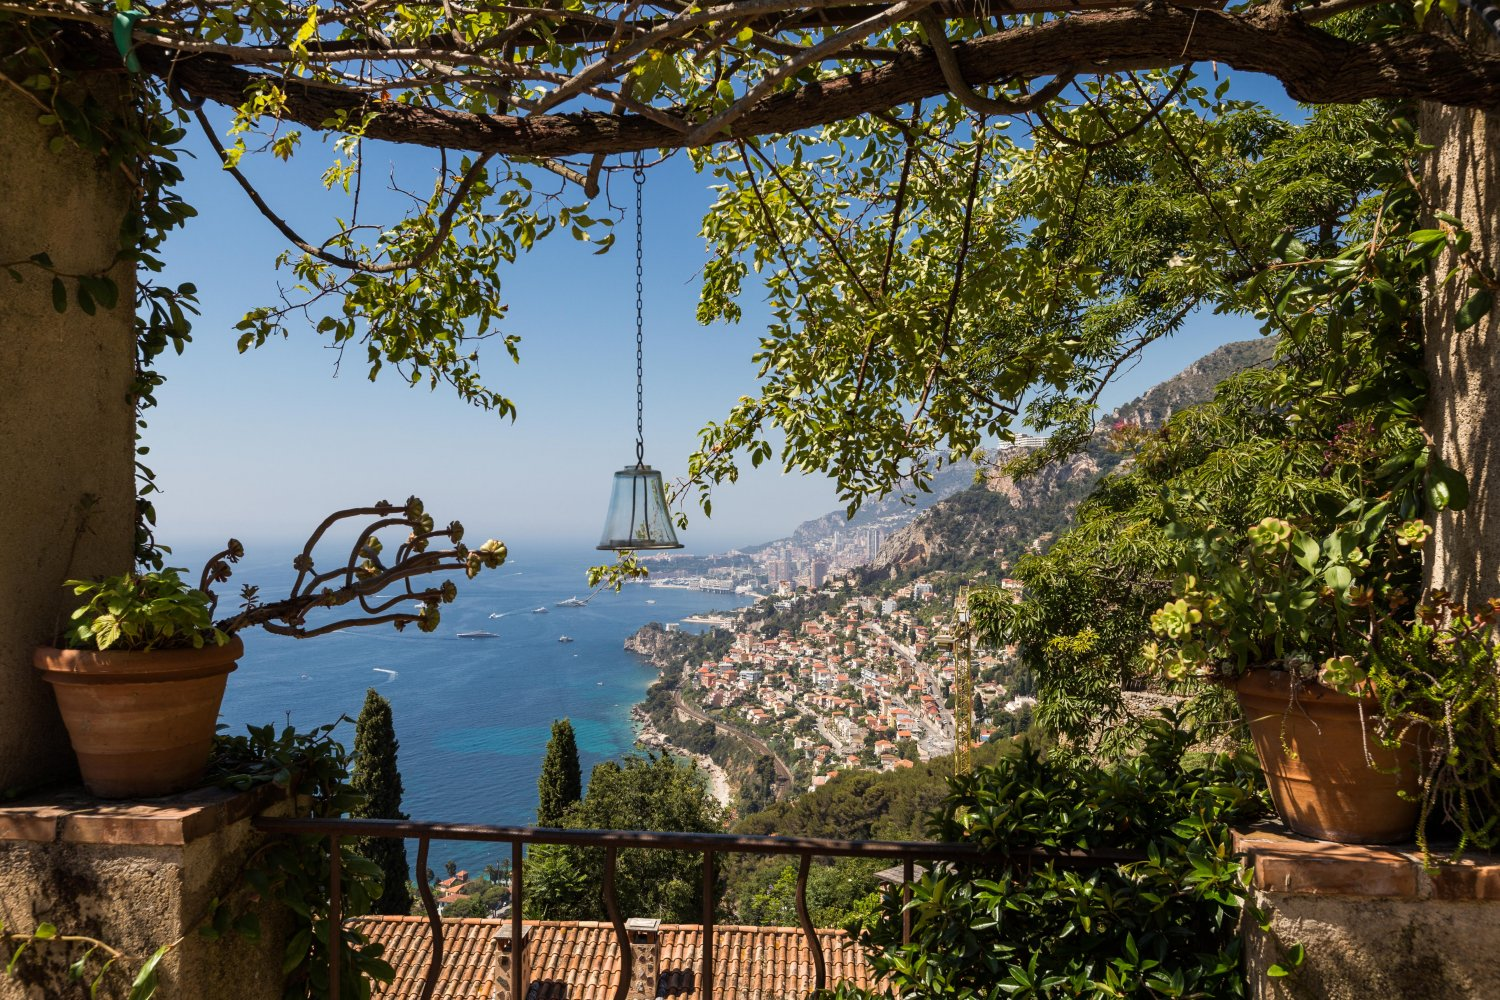 The Chaplaincy in Roquebrune-Cap-Martin